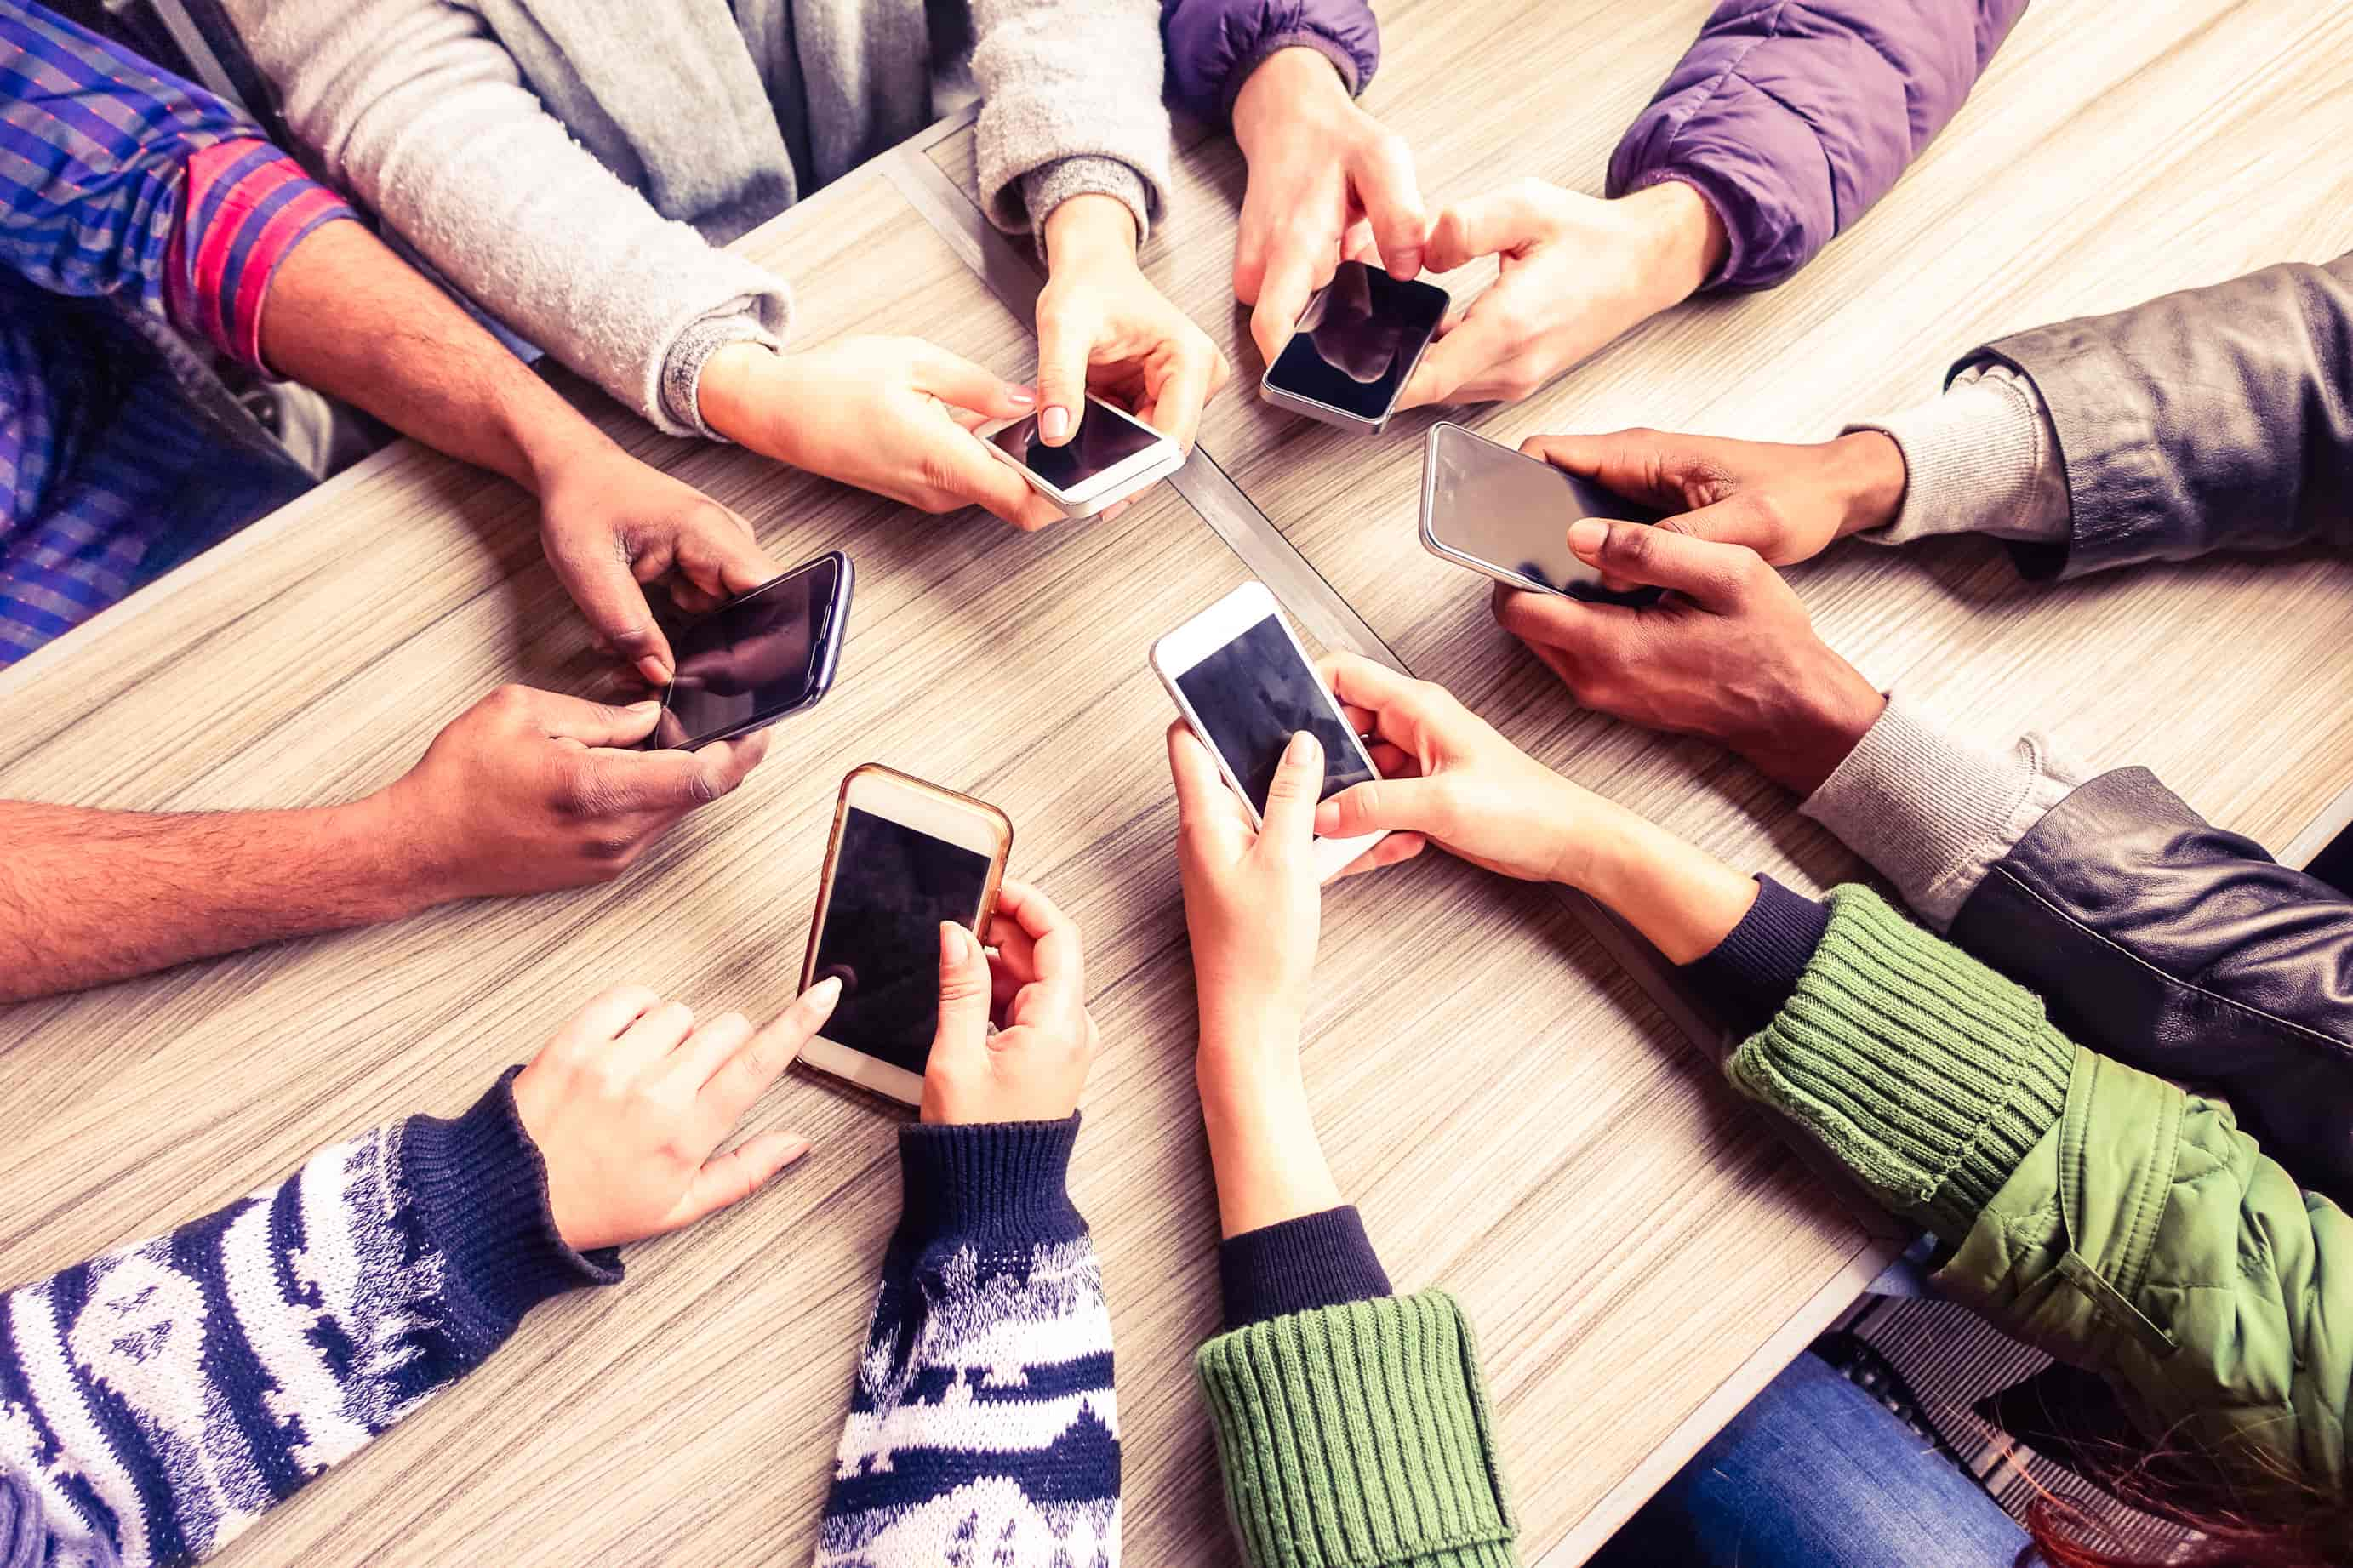 Close up photograph from an elevated perspective looking down on a group of people comparing mobile devices - their arms and hands arrayed in a circle, each holding a different device in the center, all resting on a table top